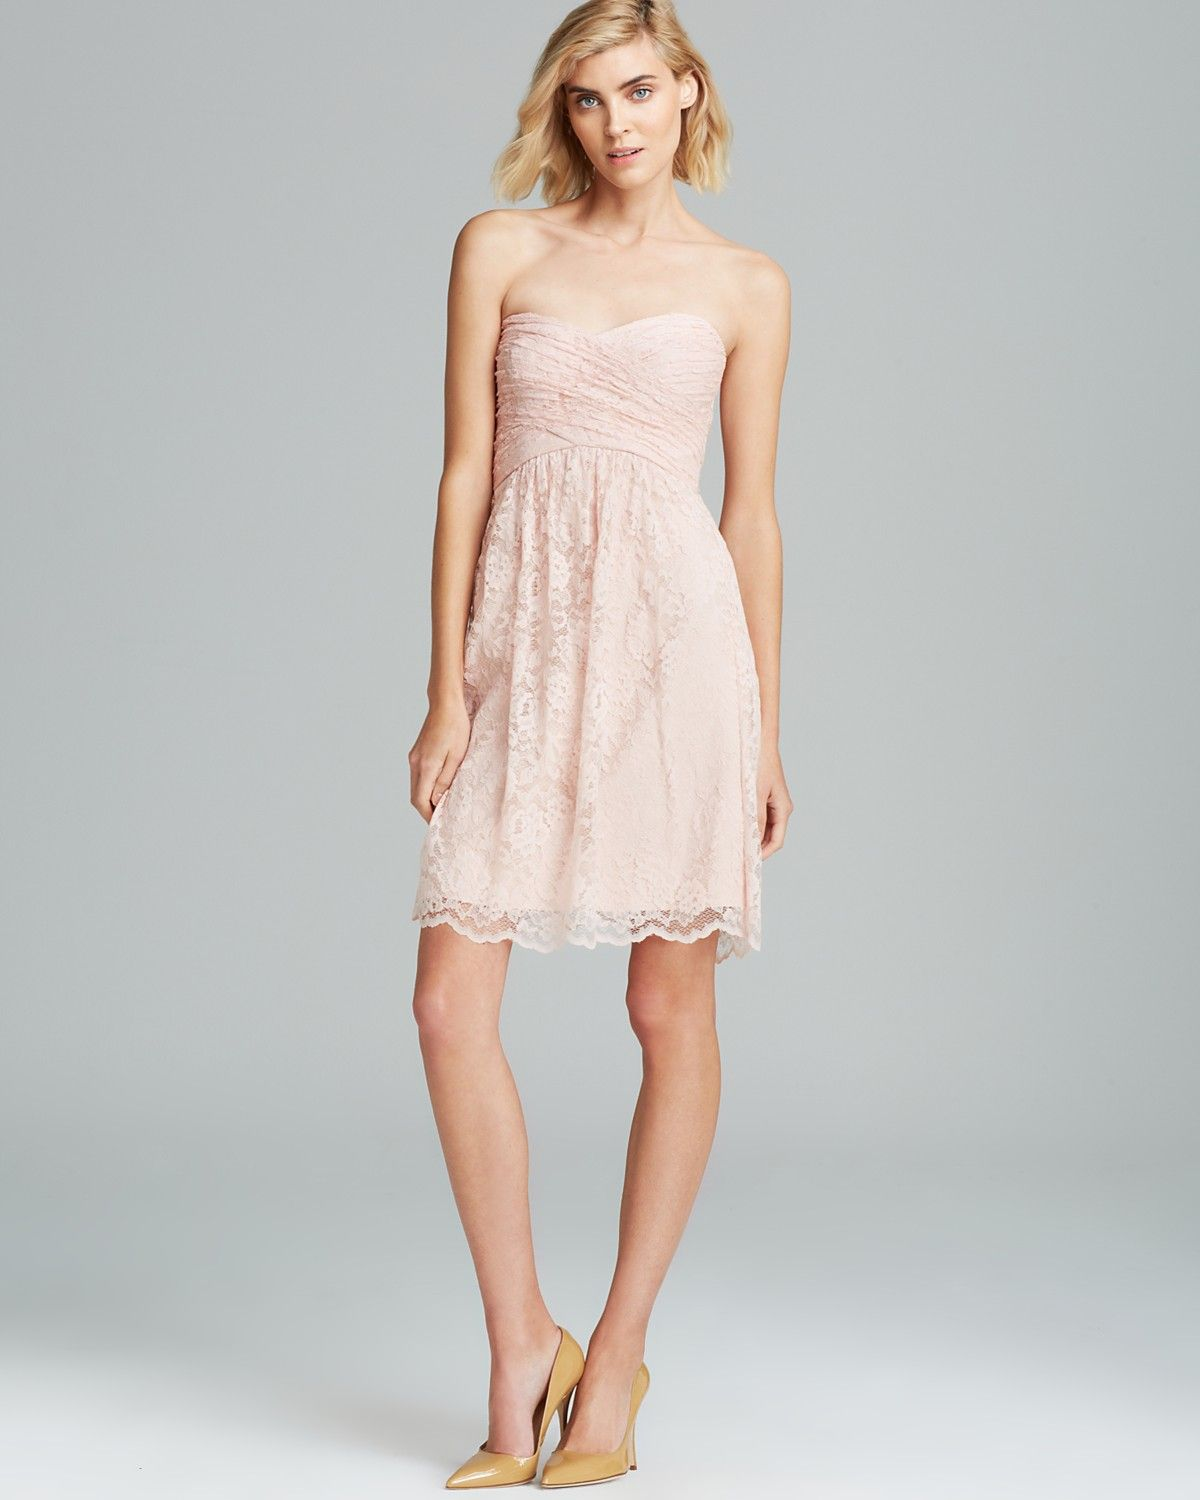 Amsale strapless lace dress bloomingdales bridesmaids amsale strapless lace dress bloomingdales ombrellifo Images